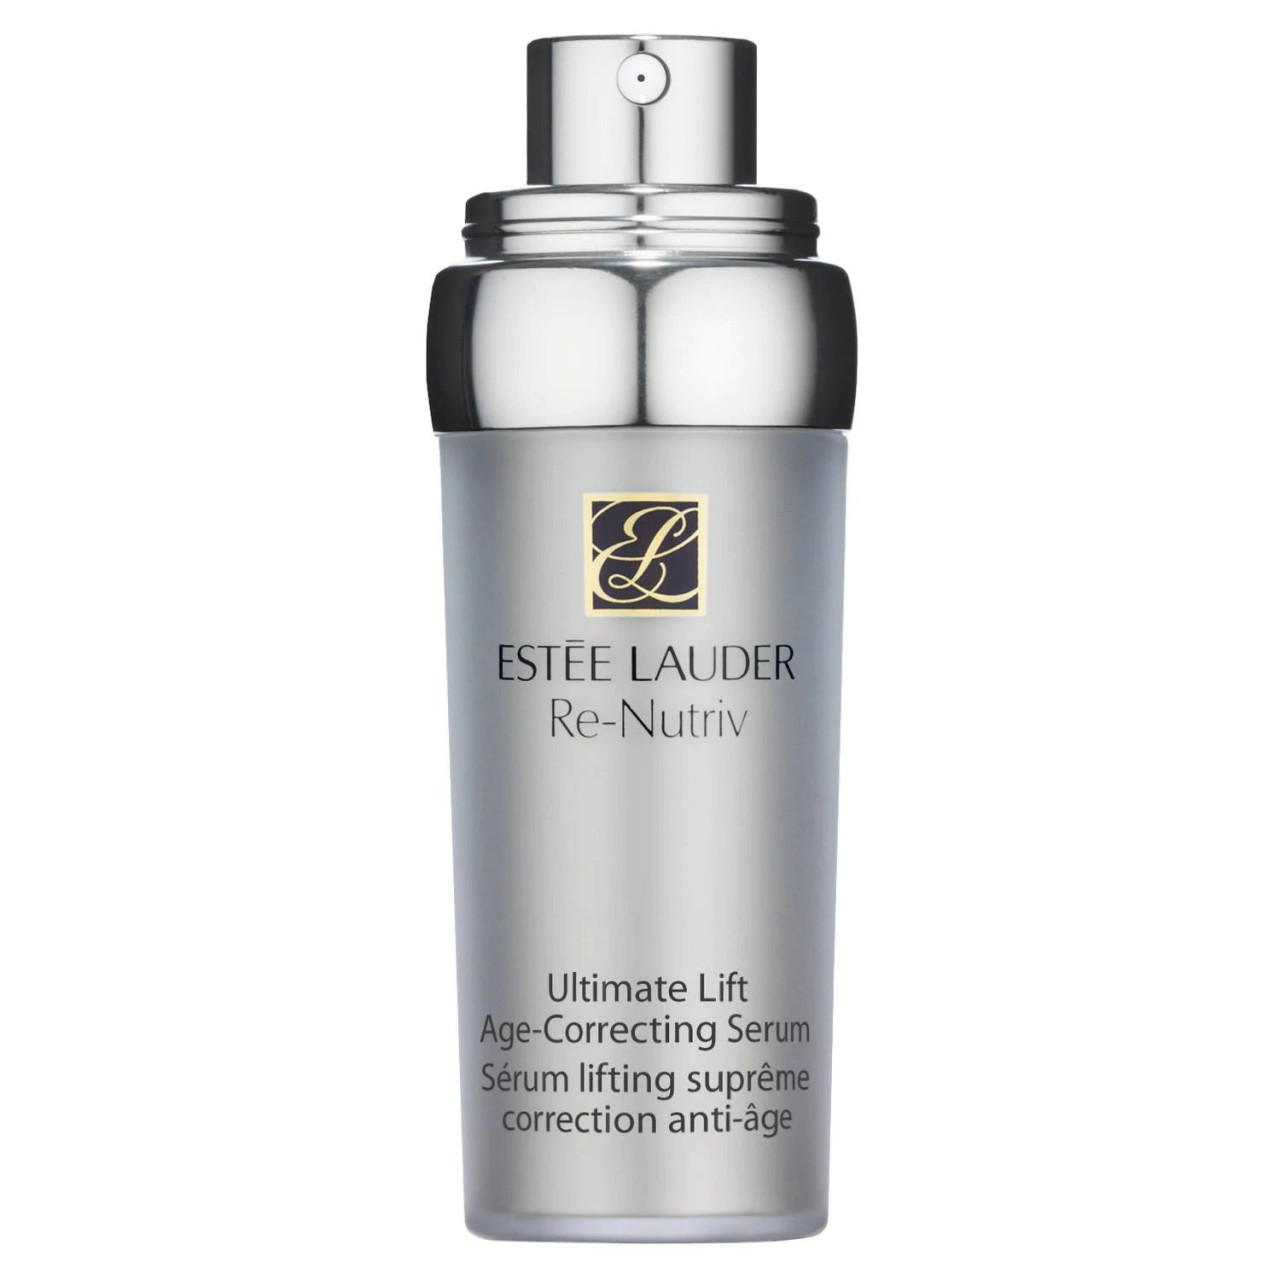 Ultimate Lifting Correcting Serum